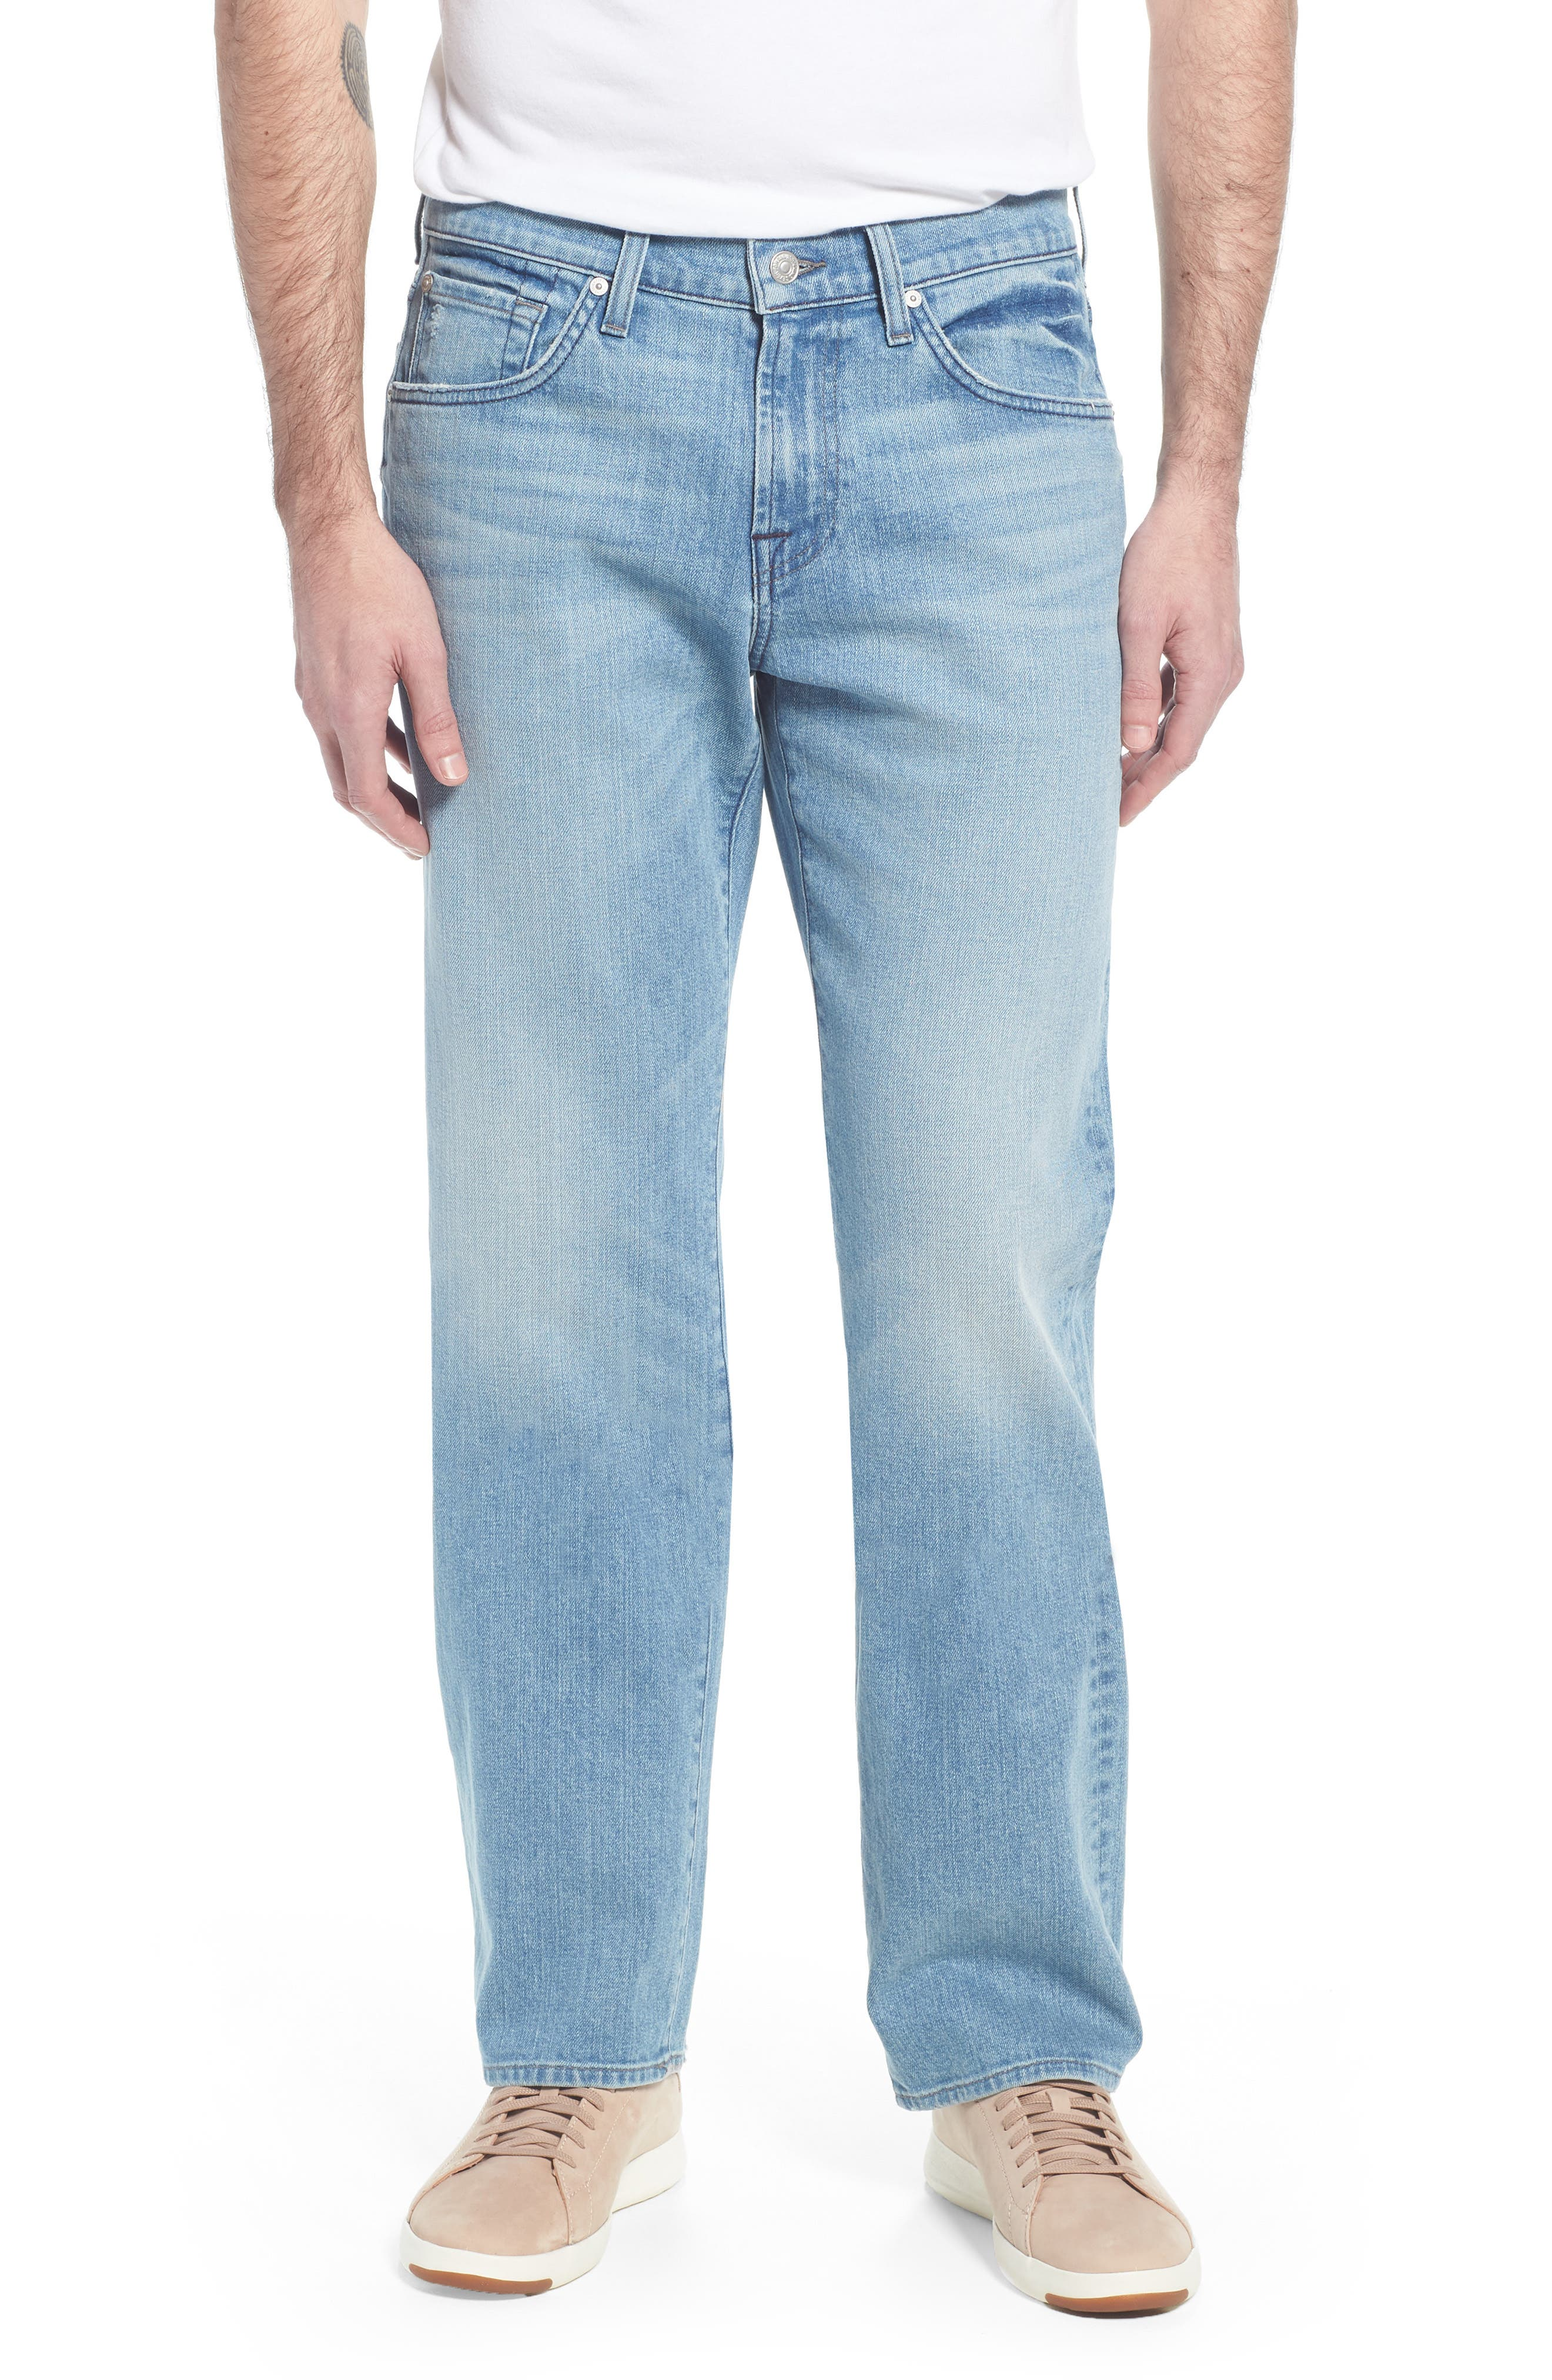 Austyn Relaxed Fit Jeans,                         Main,                         color, Omega